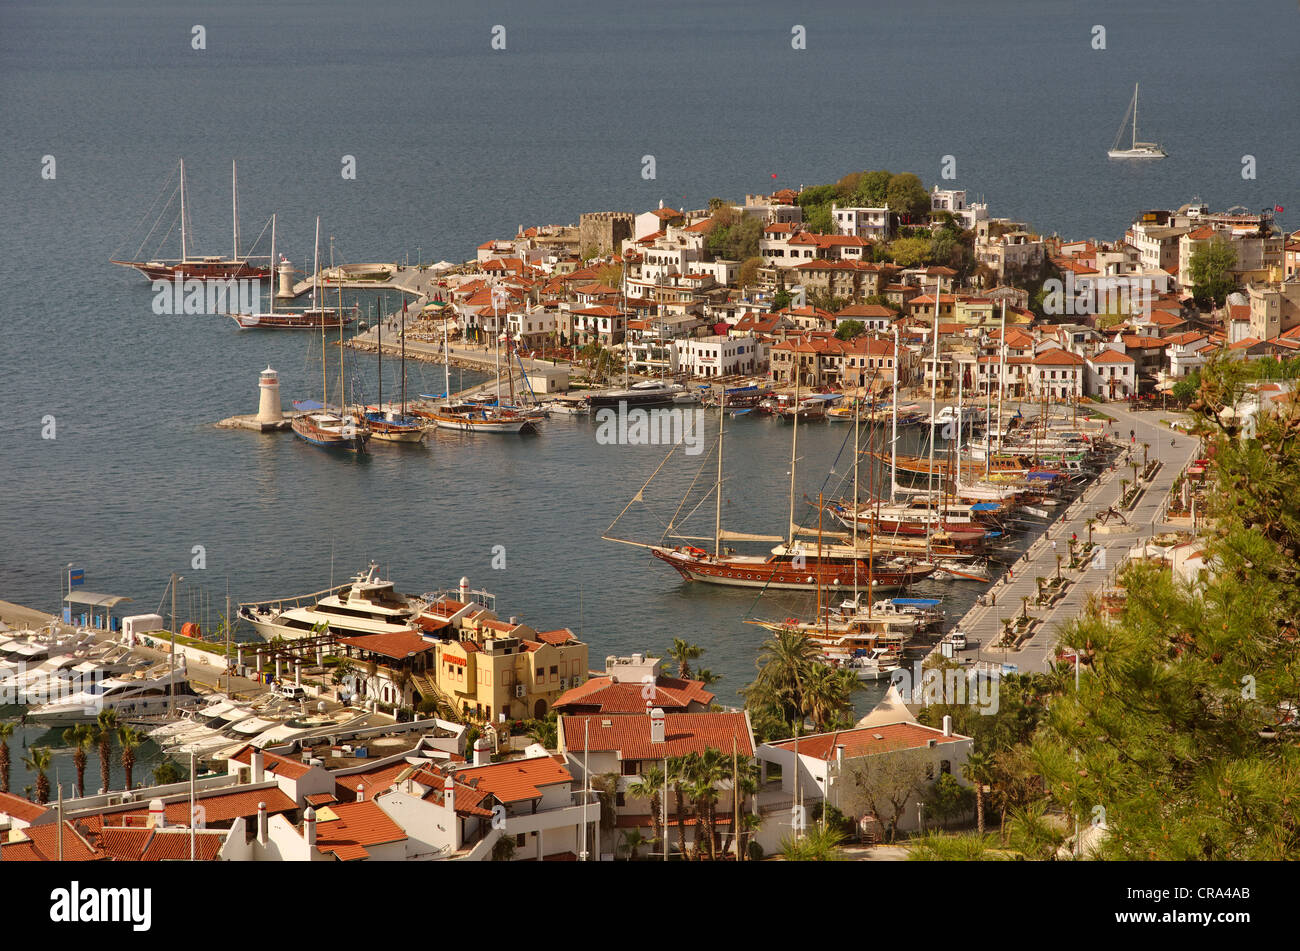 Marmaris Old Town and Harbour, Muğla, Turkey - Stock Image